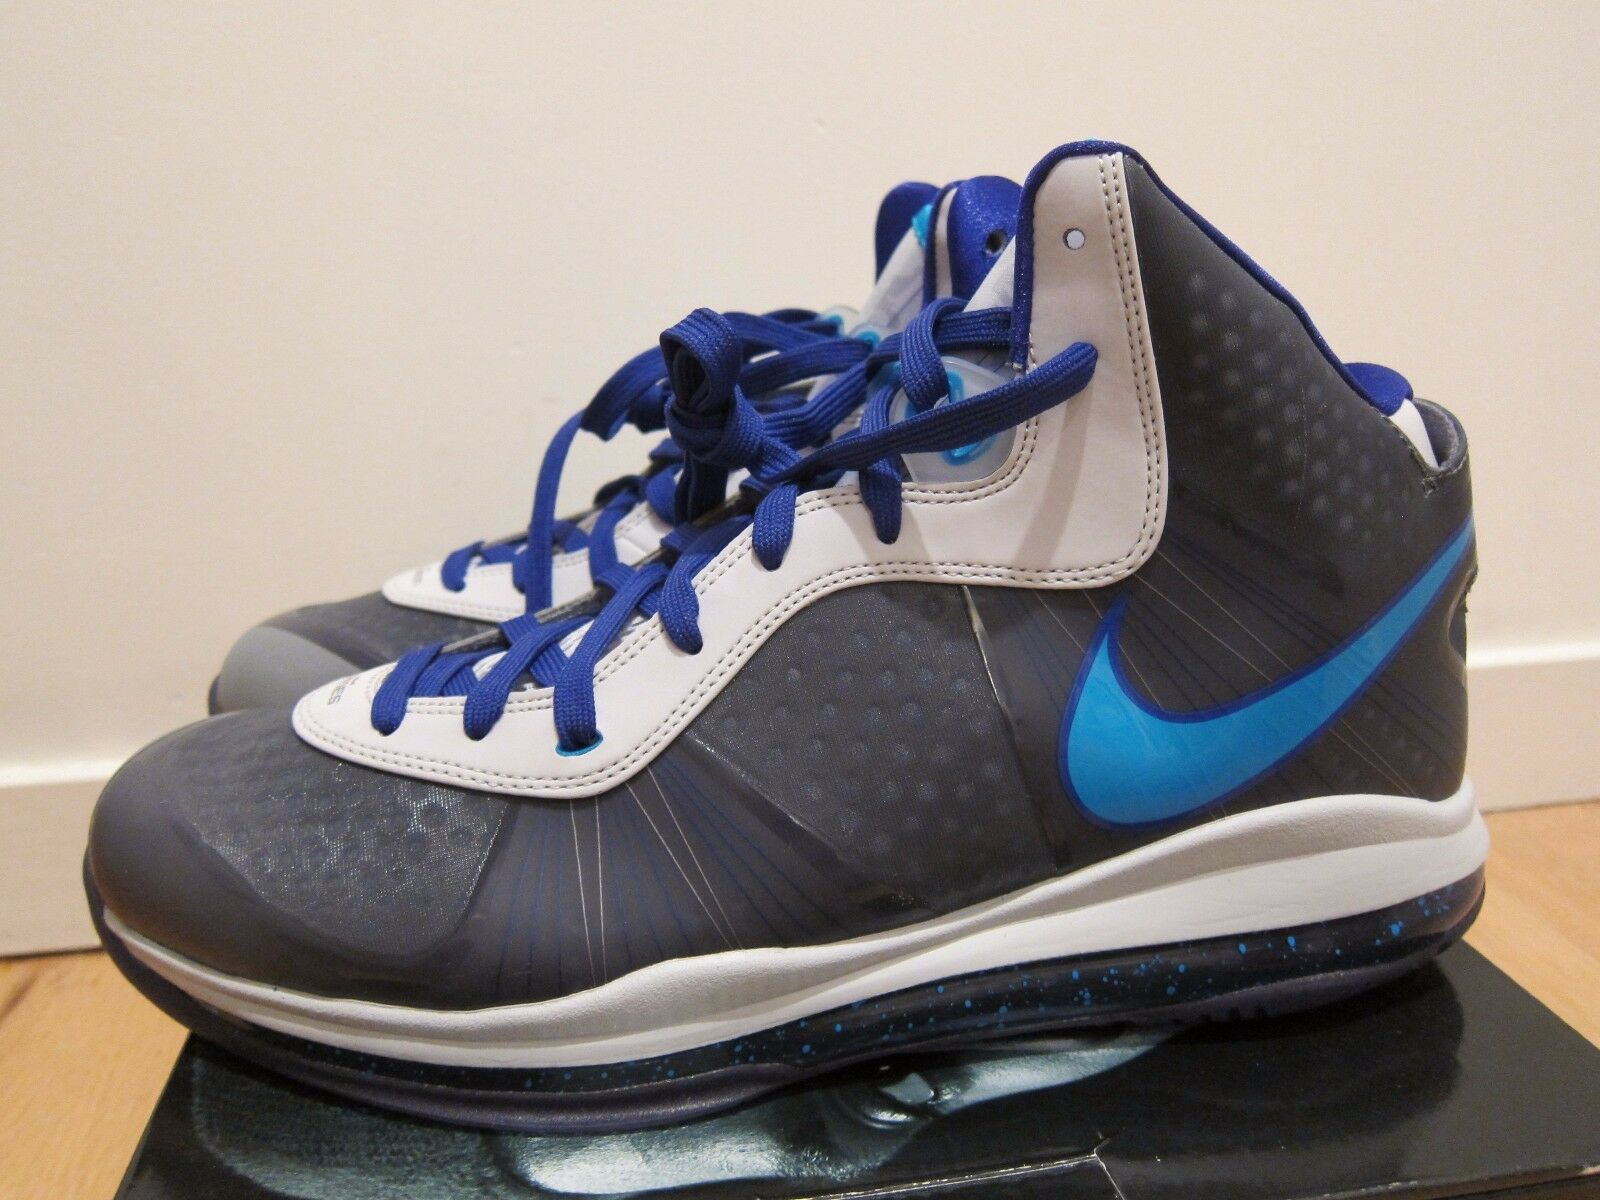 official photos 6f560 ee1f8 2010 Nike Air Lebron 8 V V V 2 VIII Summit Lake Hornets bluee Grey size 13  c7bca0